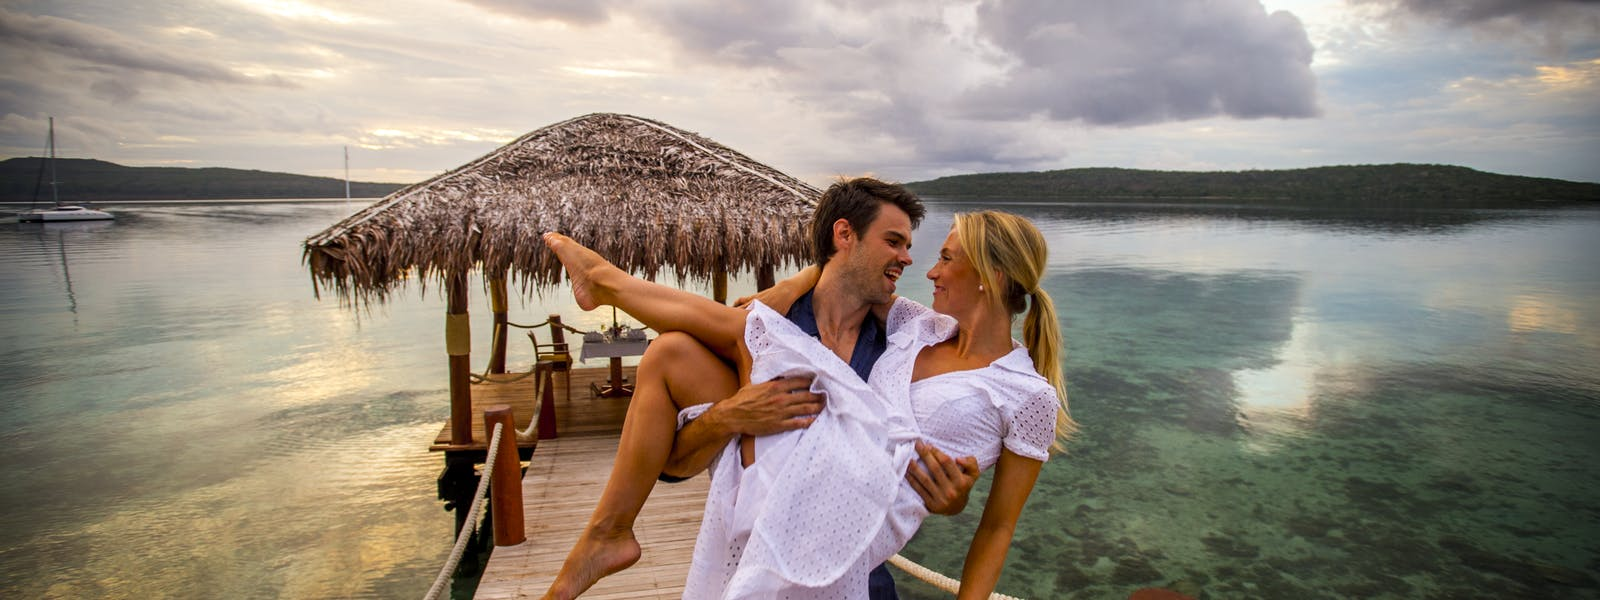 Couple on Jetty The Havannah, Vanuatu. Award winning Luxury resort retreat for couples,  romance, weddings and Honeymoon.